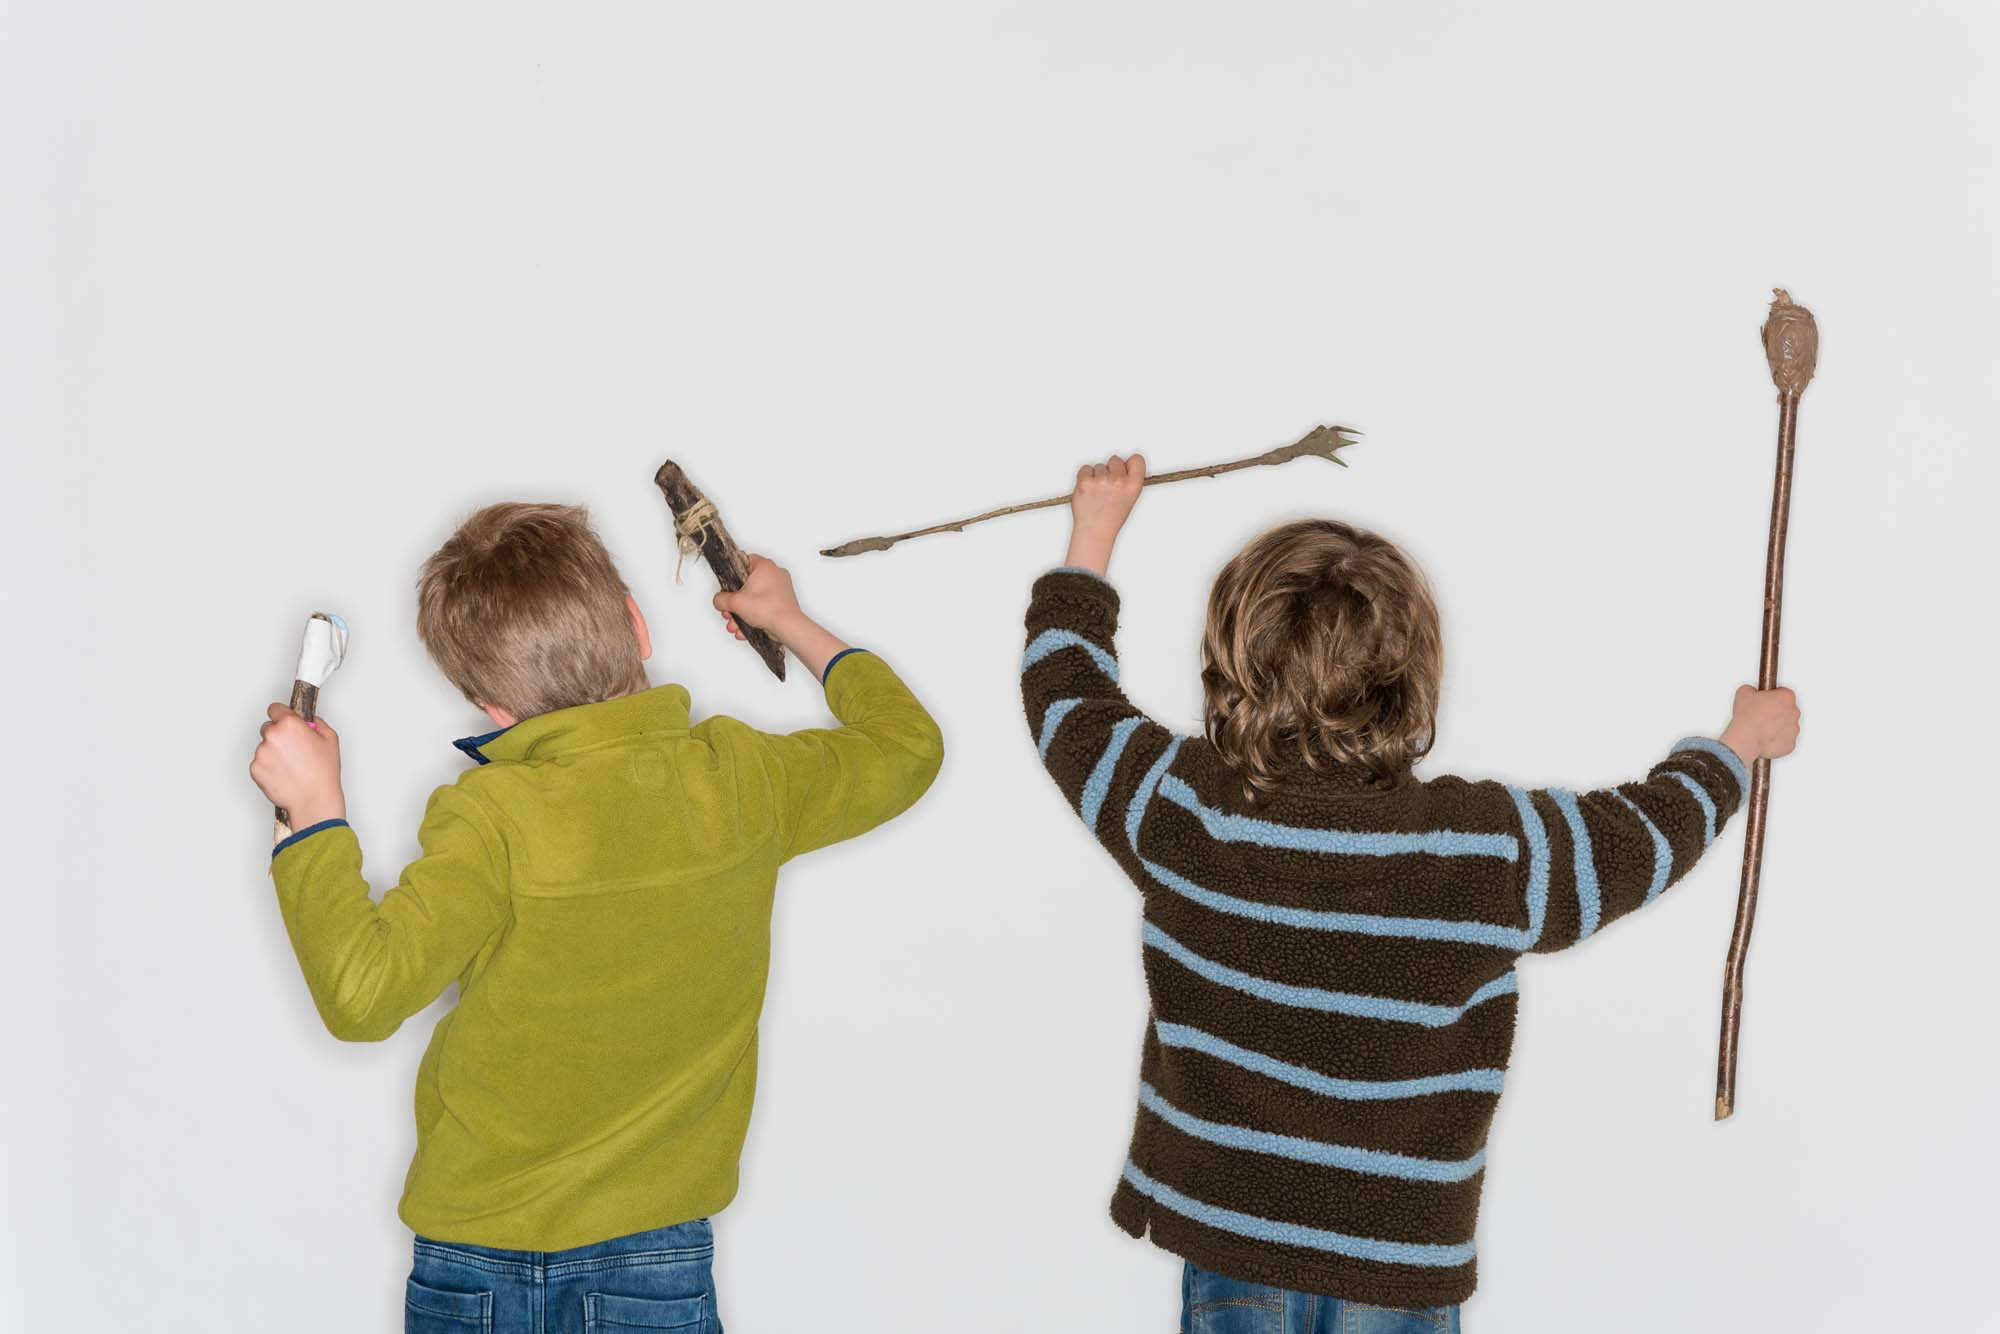 a photo of two kids holding sticks